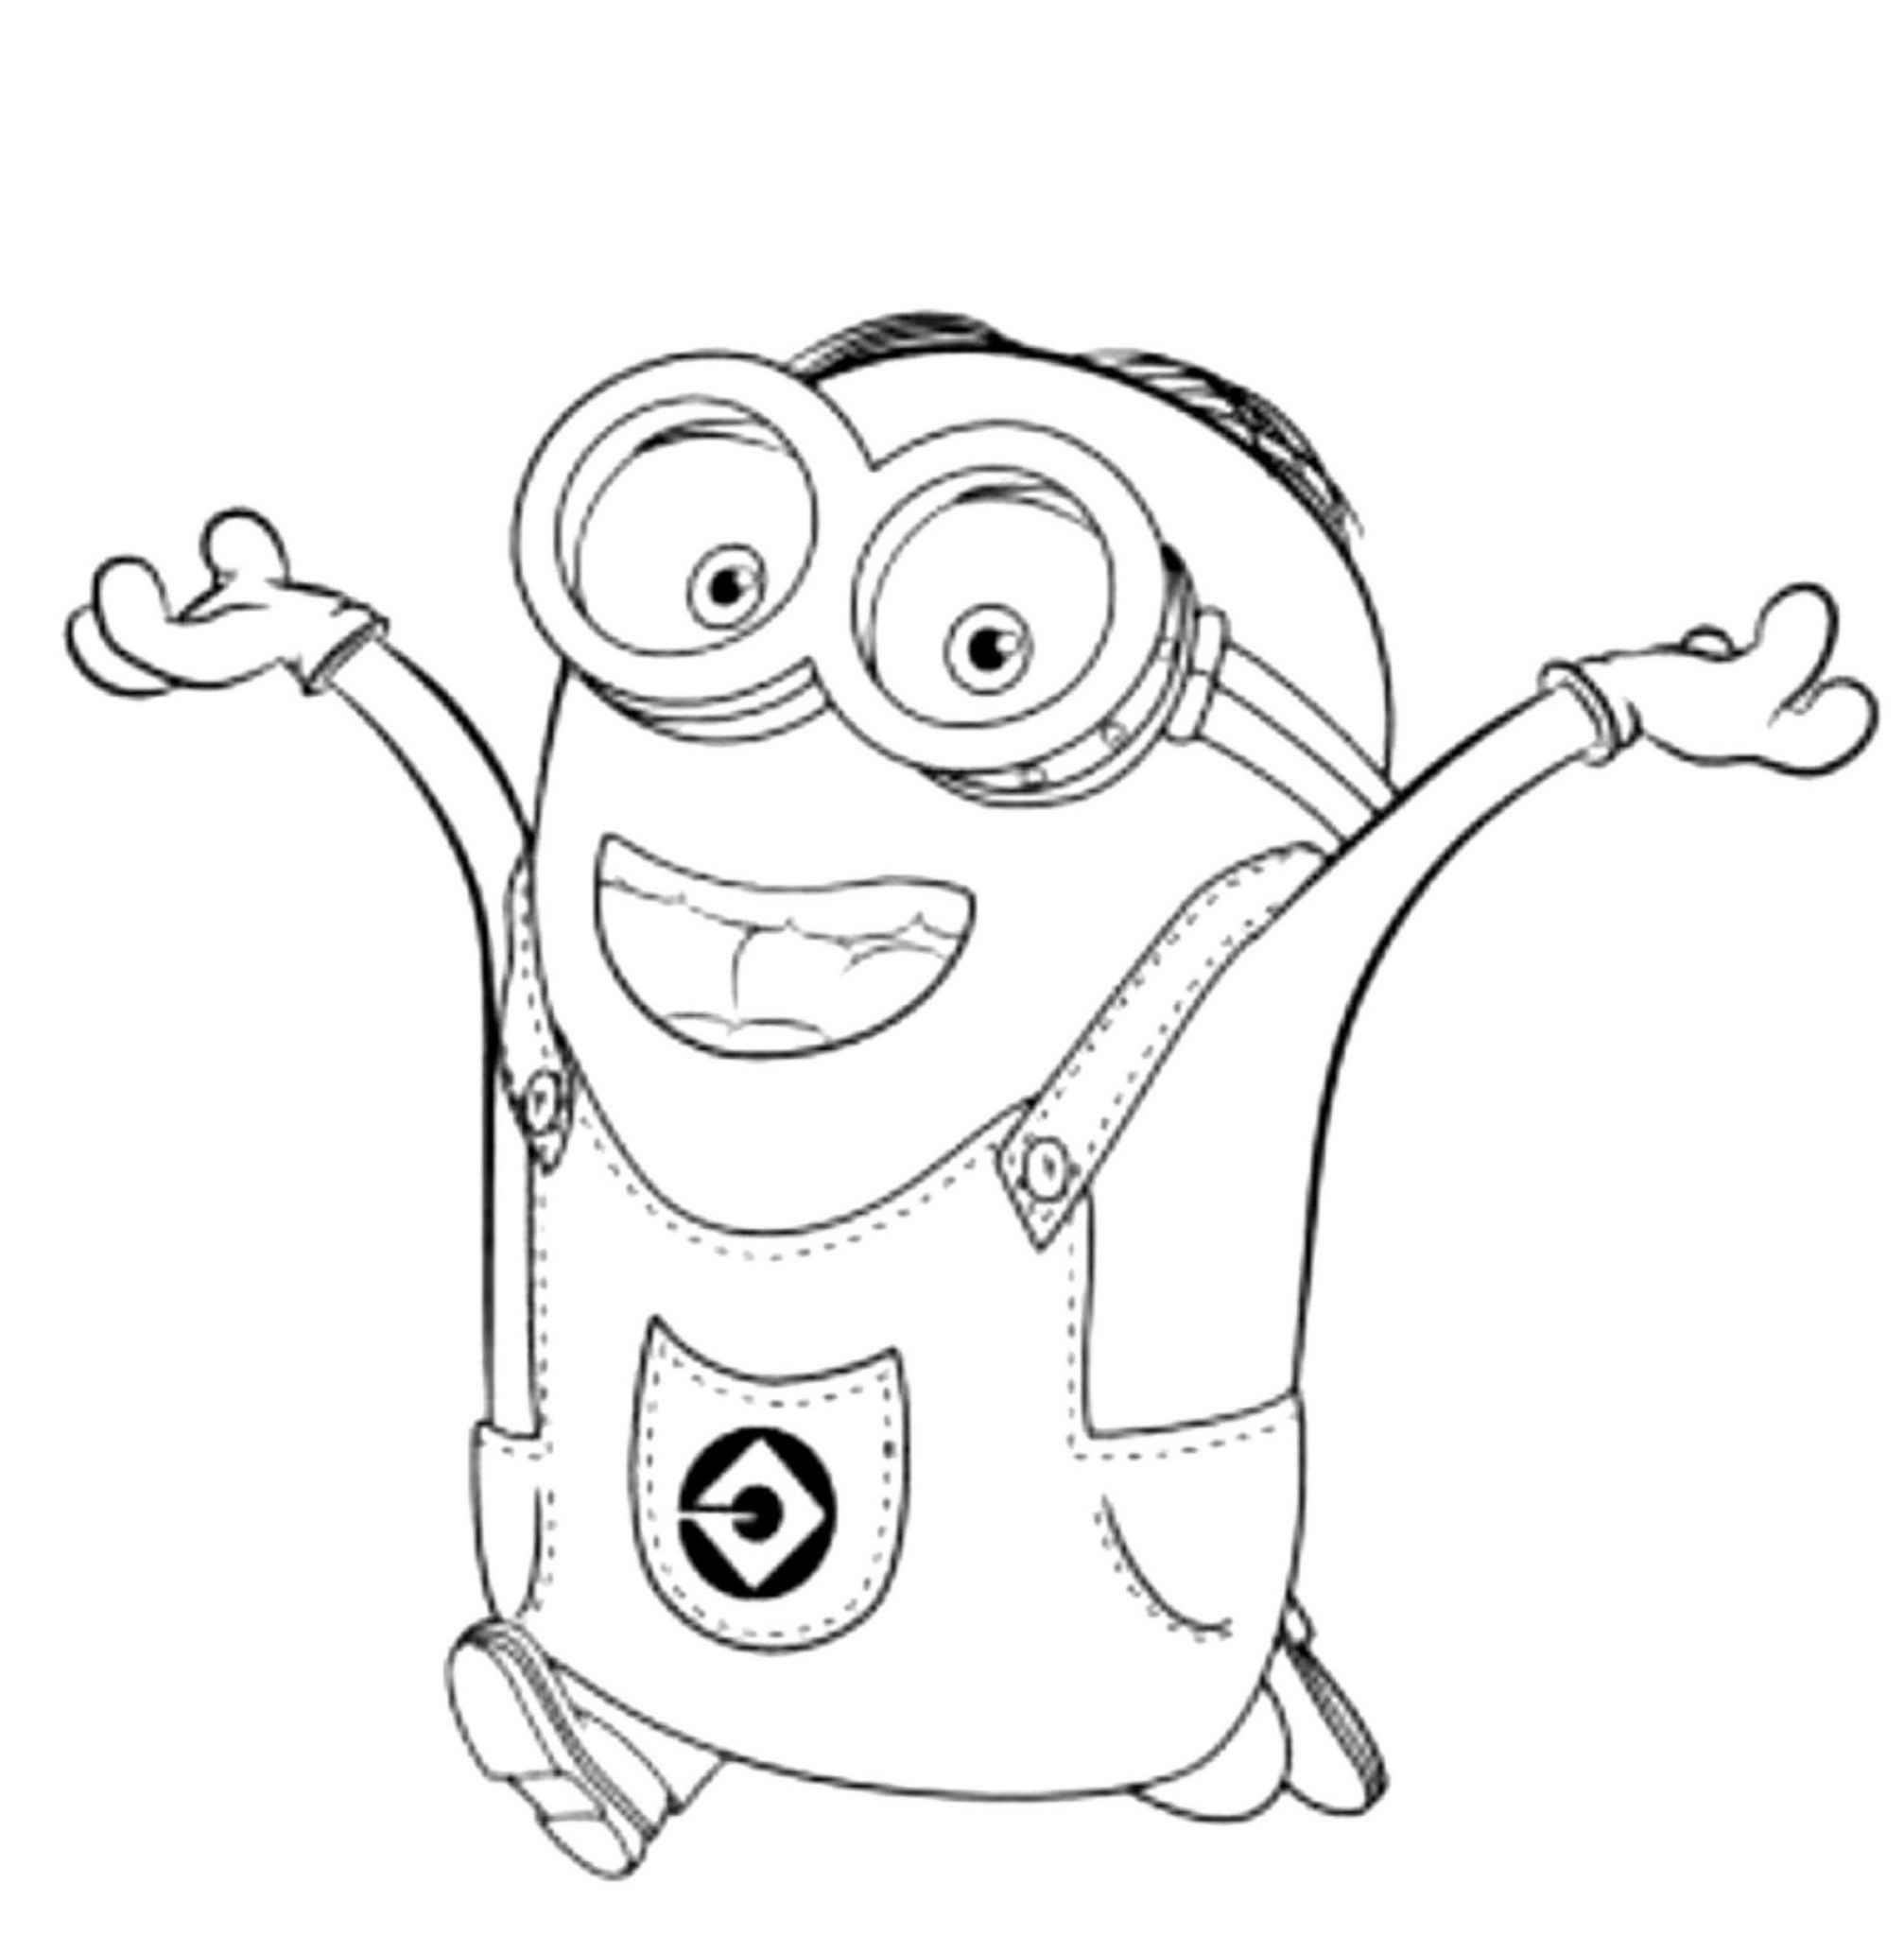 Minions Coloring Pages Printable